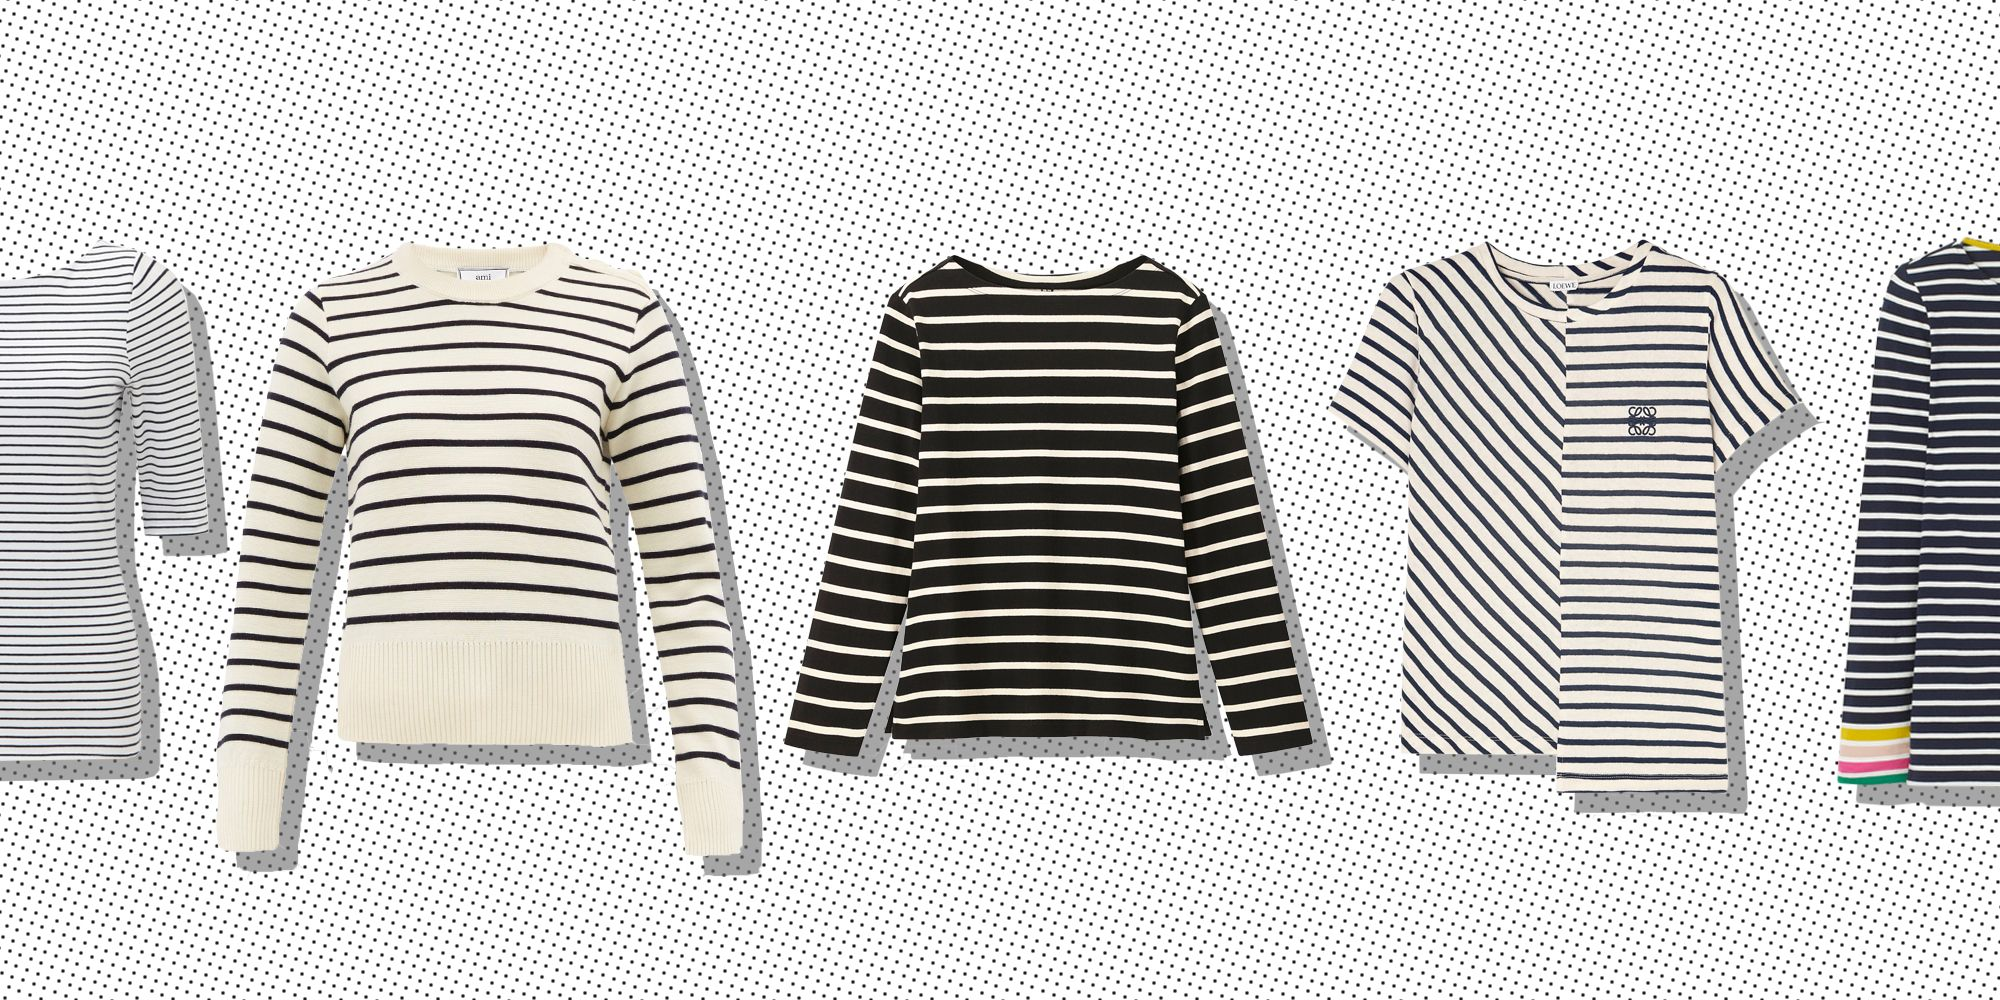 Best Breton Tops - 17 Striped Styles To Buy Now And Wear Forever